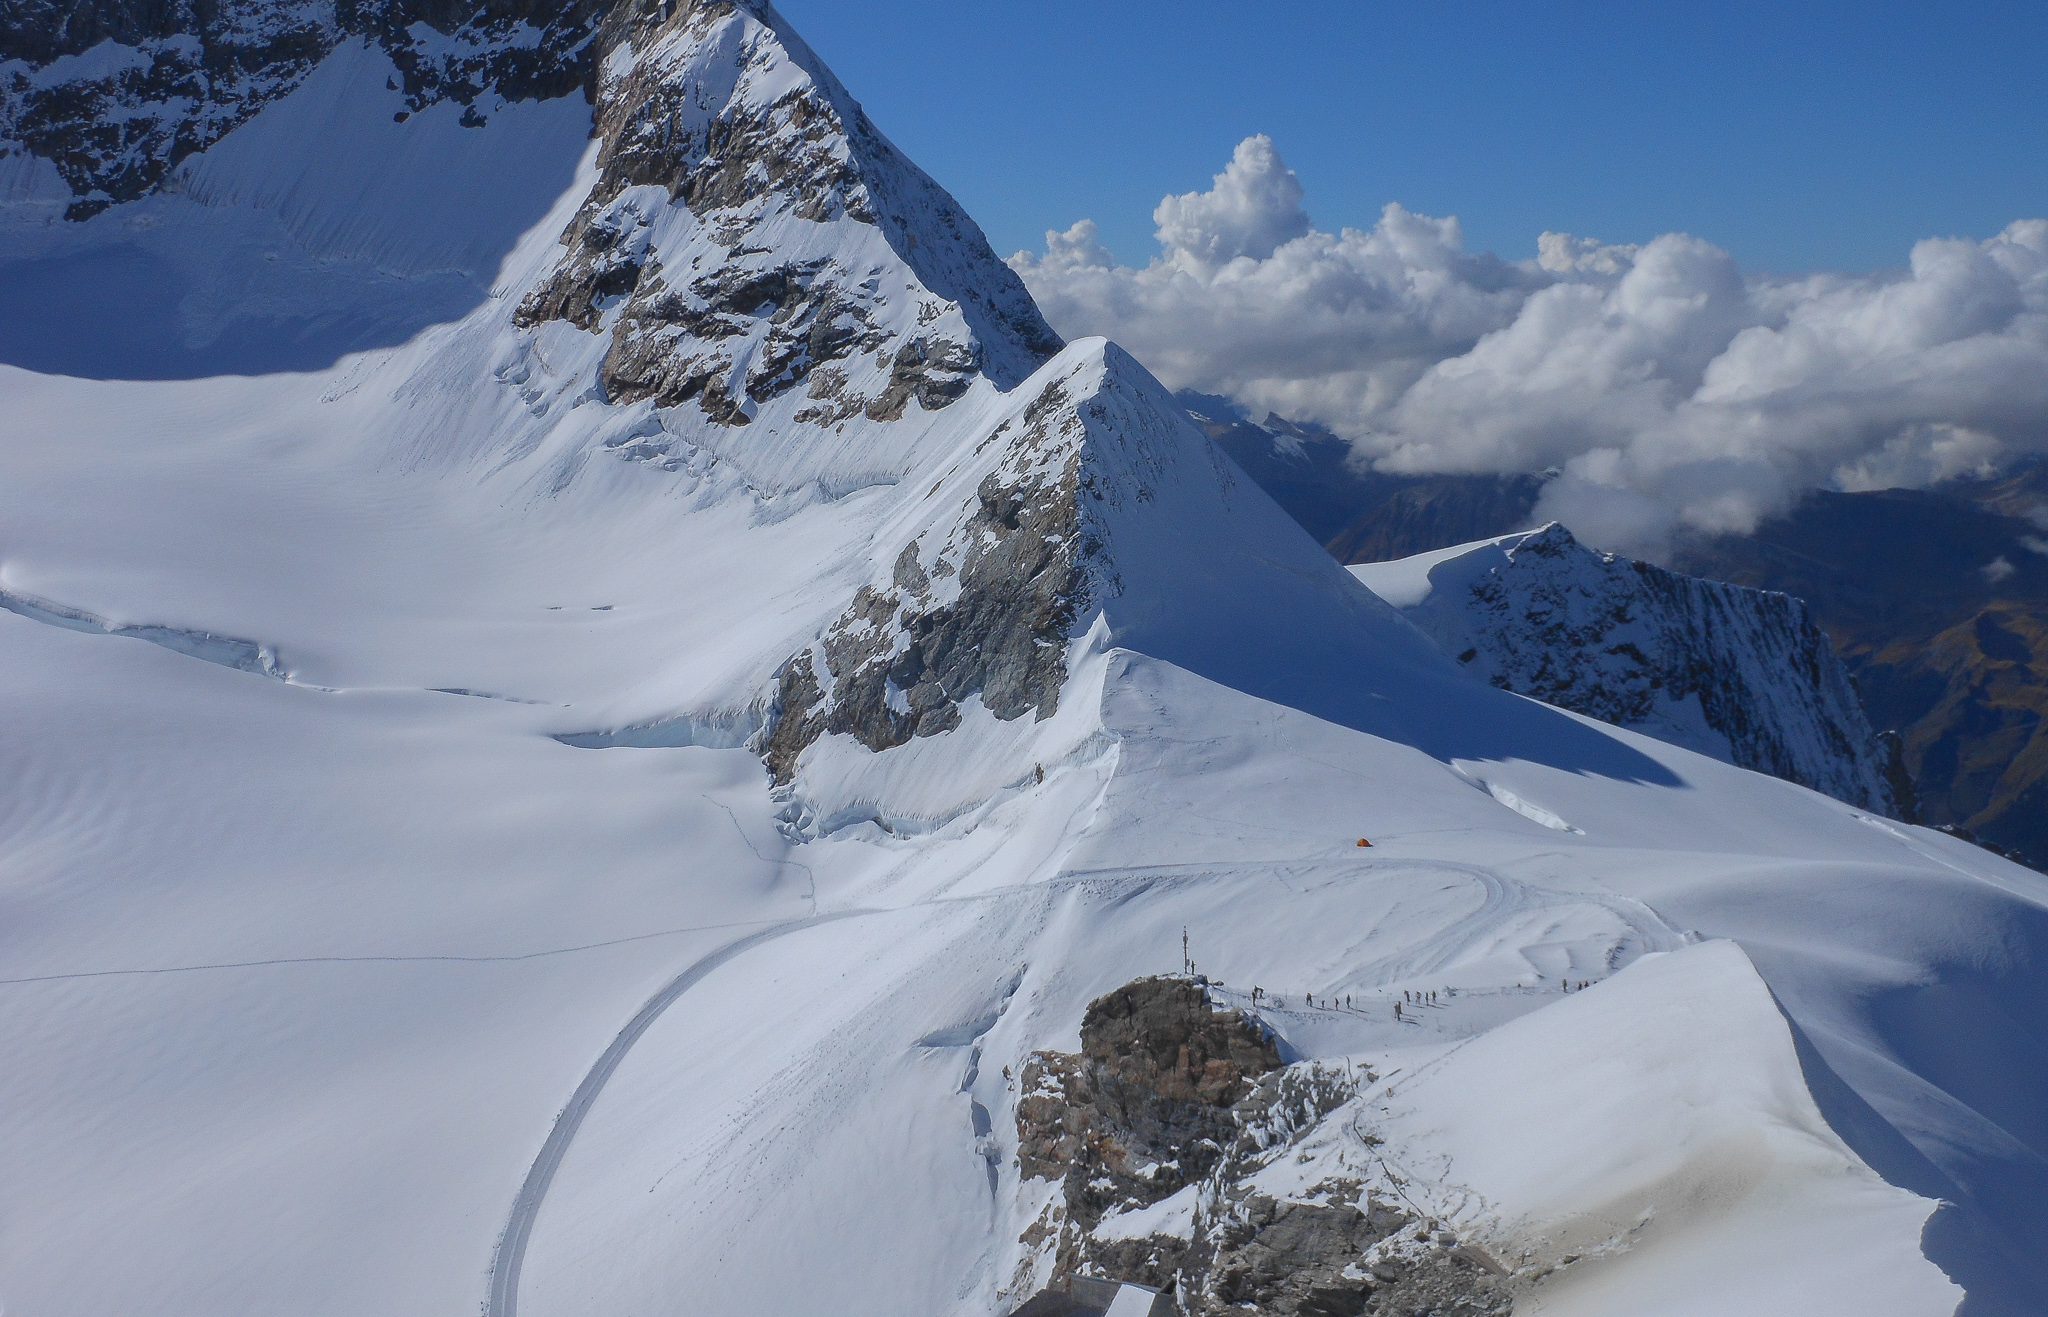 THE WESTERN FLANKS OF THE JUNGFRAU.